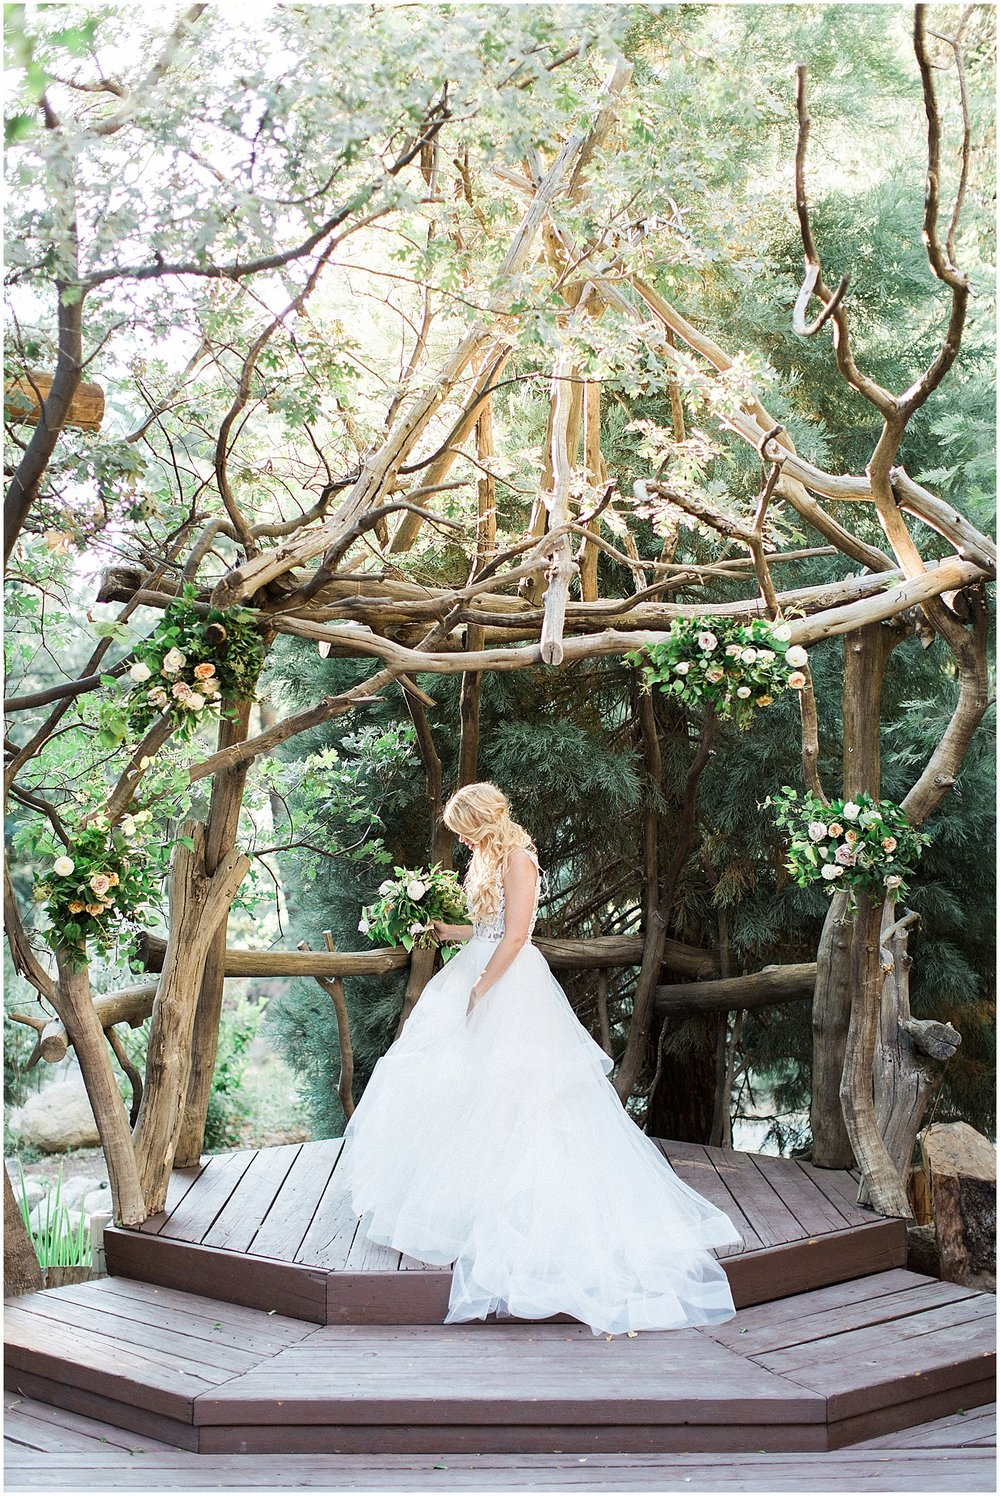 Hayley Paige Halo Wedding Dress at Arrowhead Pine Rose | featured on Style Me Pretty | Arizona Wedding Planner | Megan Dileen Events